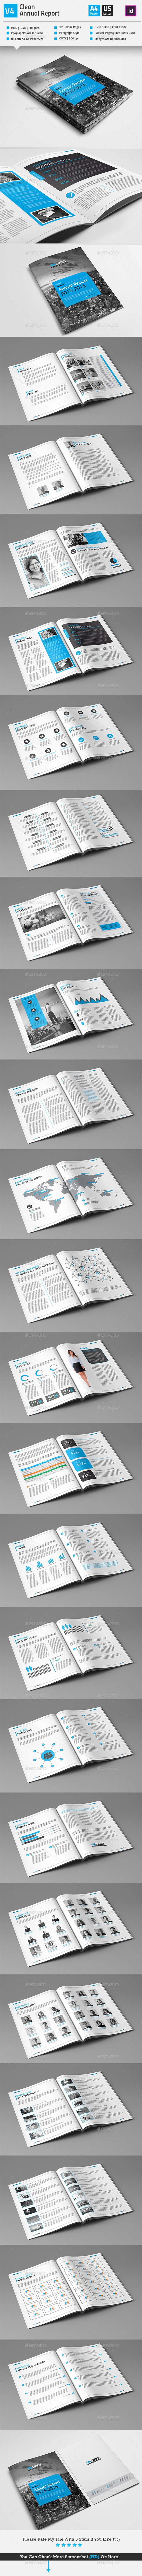 GraphicRiver Clean Annual Report V4 11934090